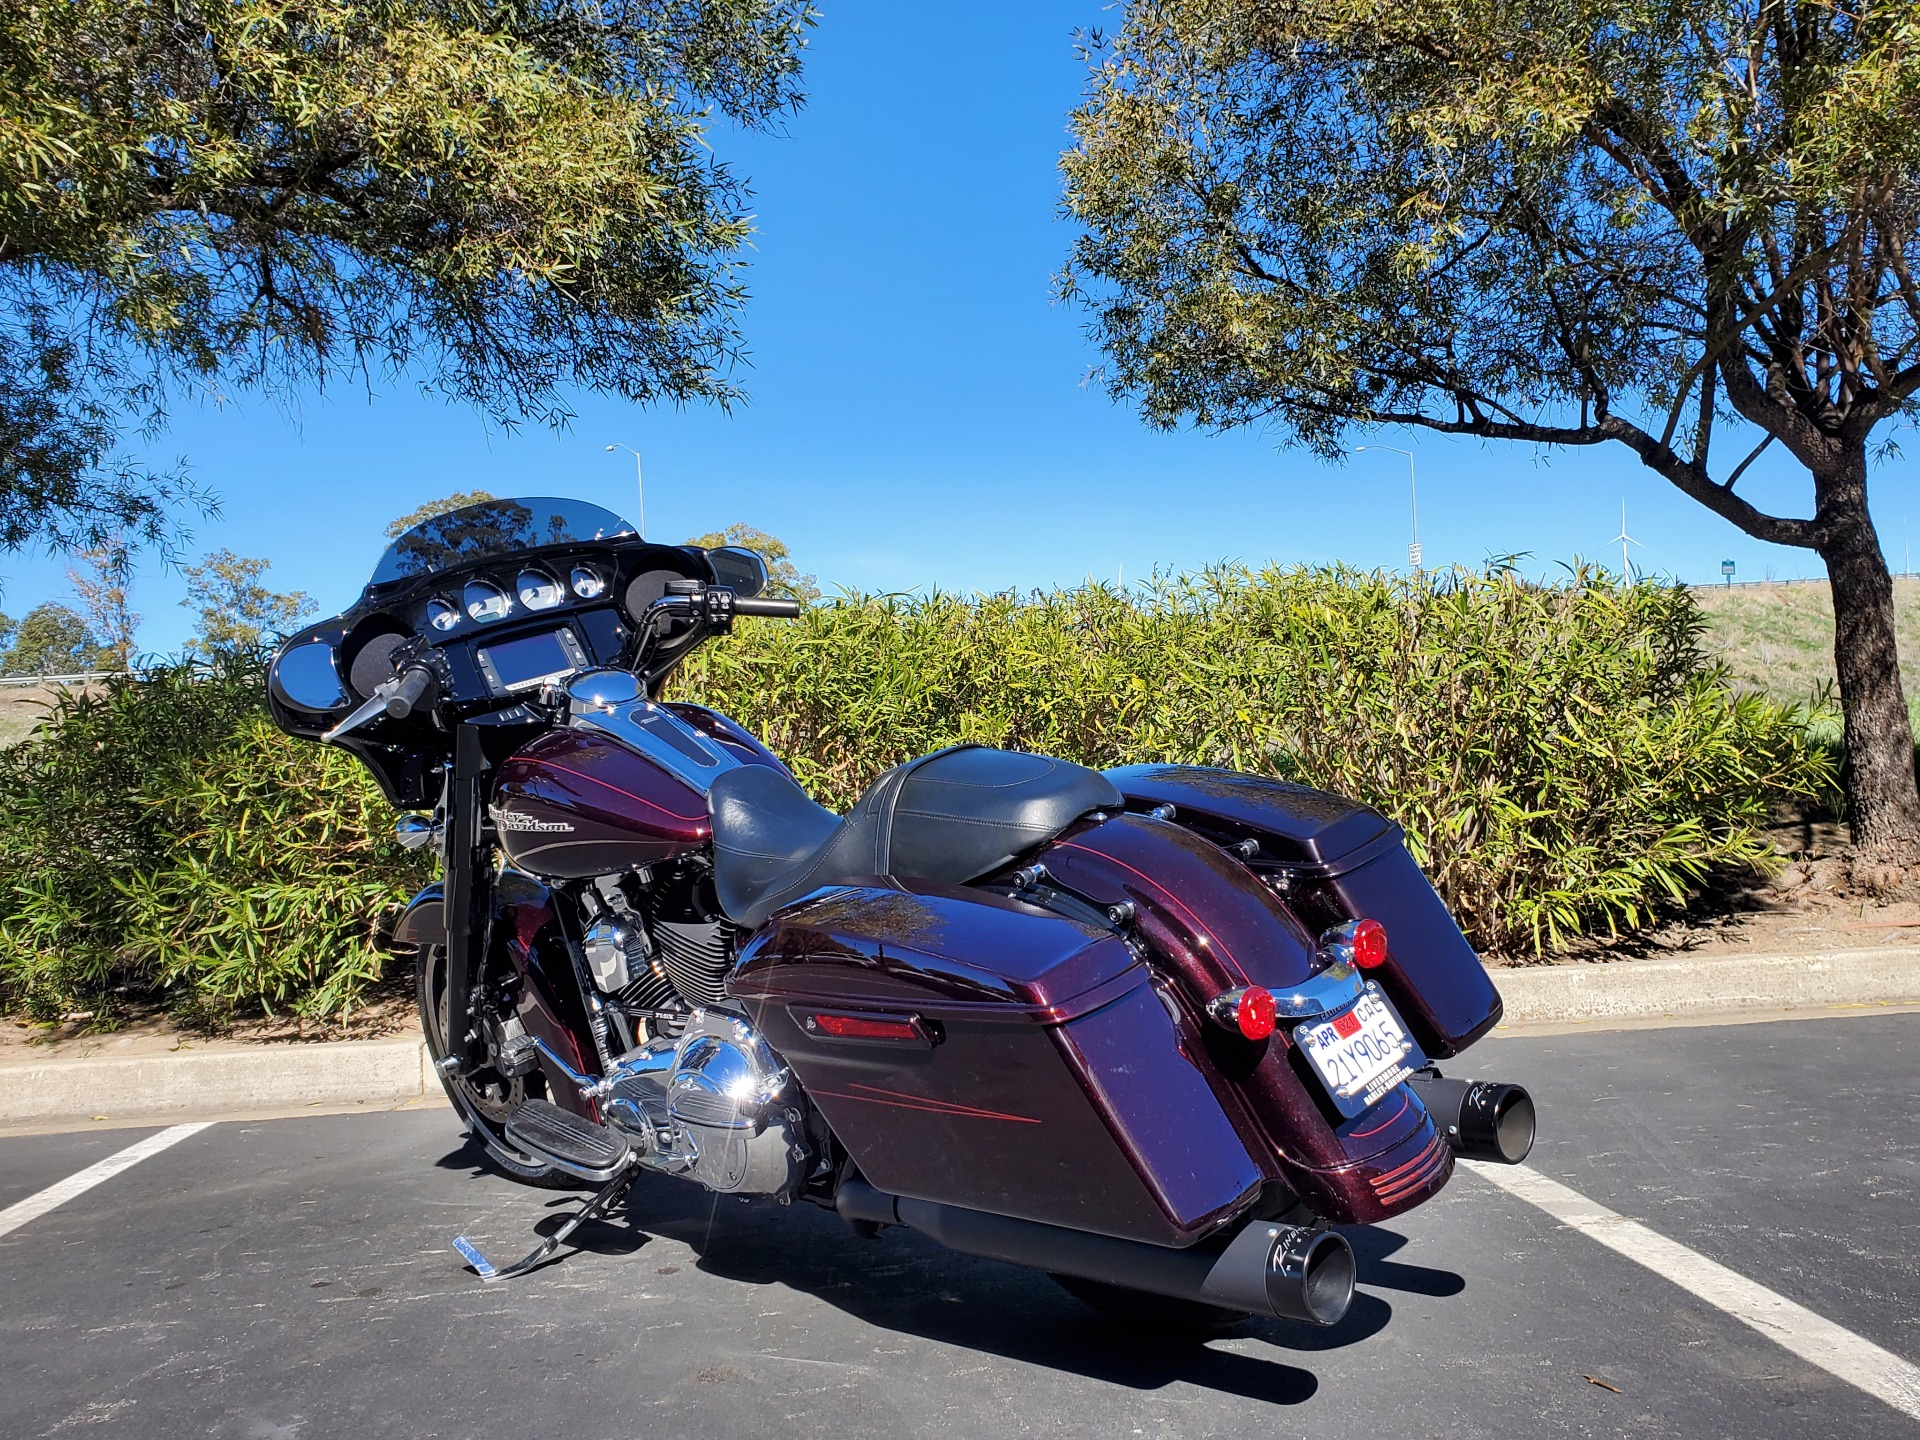 2014 harley davidson street glide special in livermore california